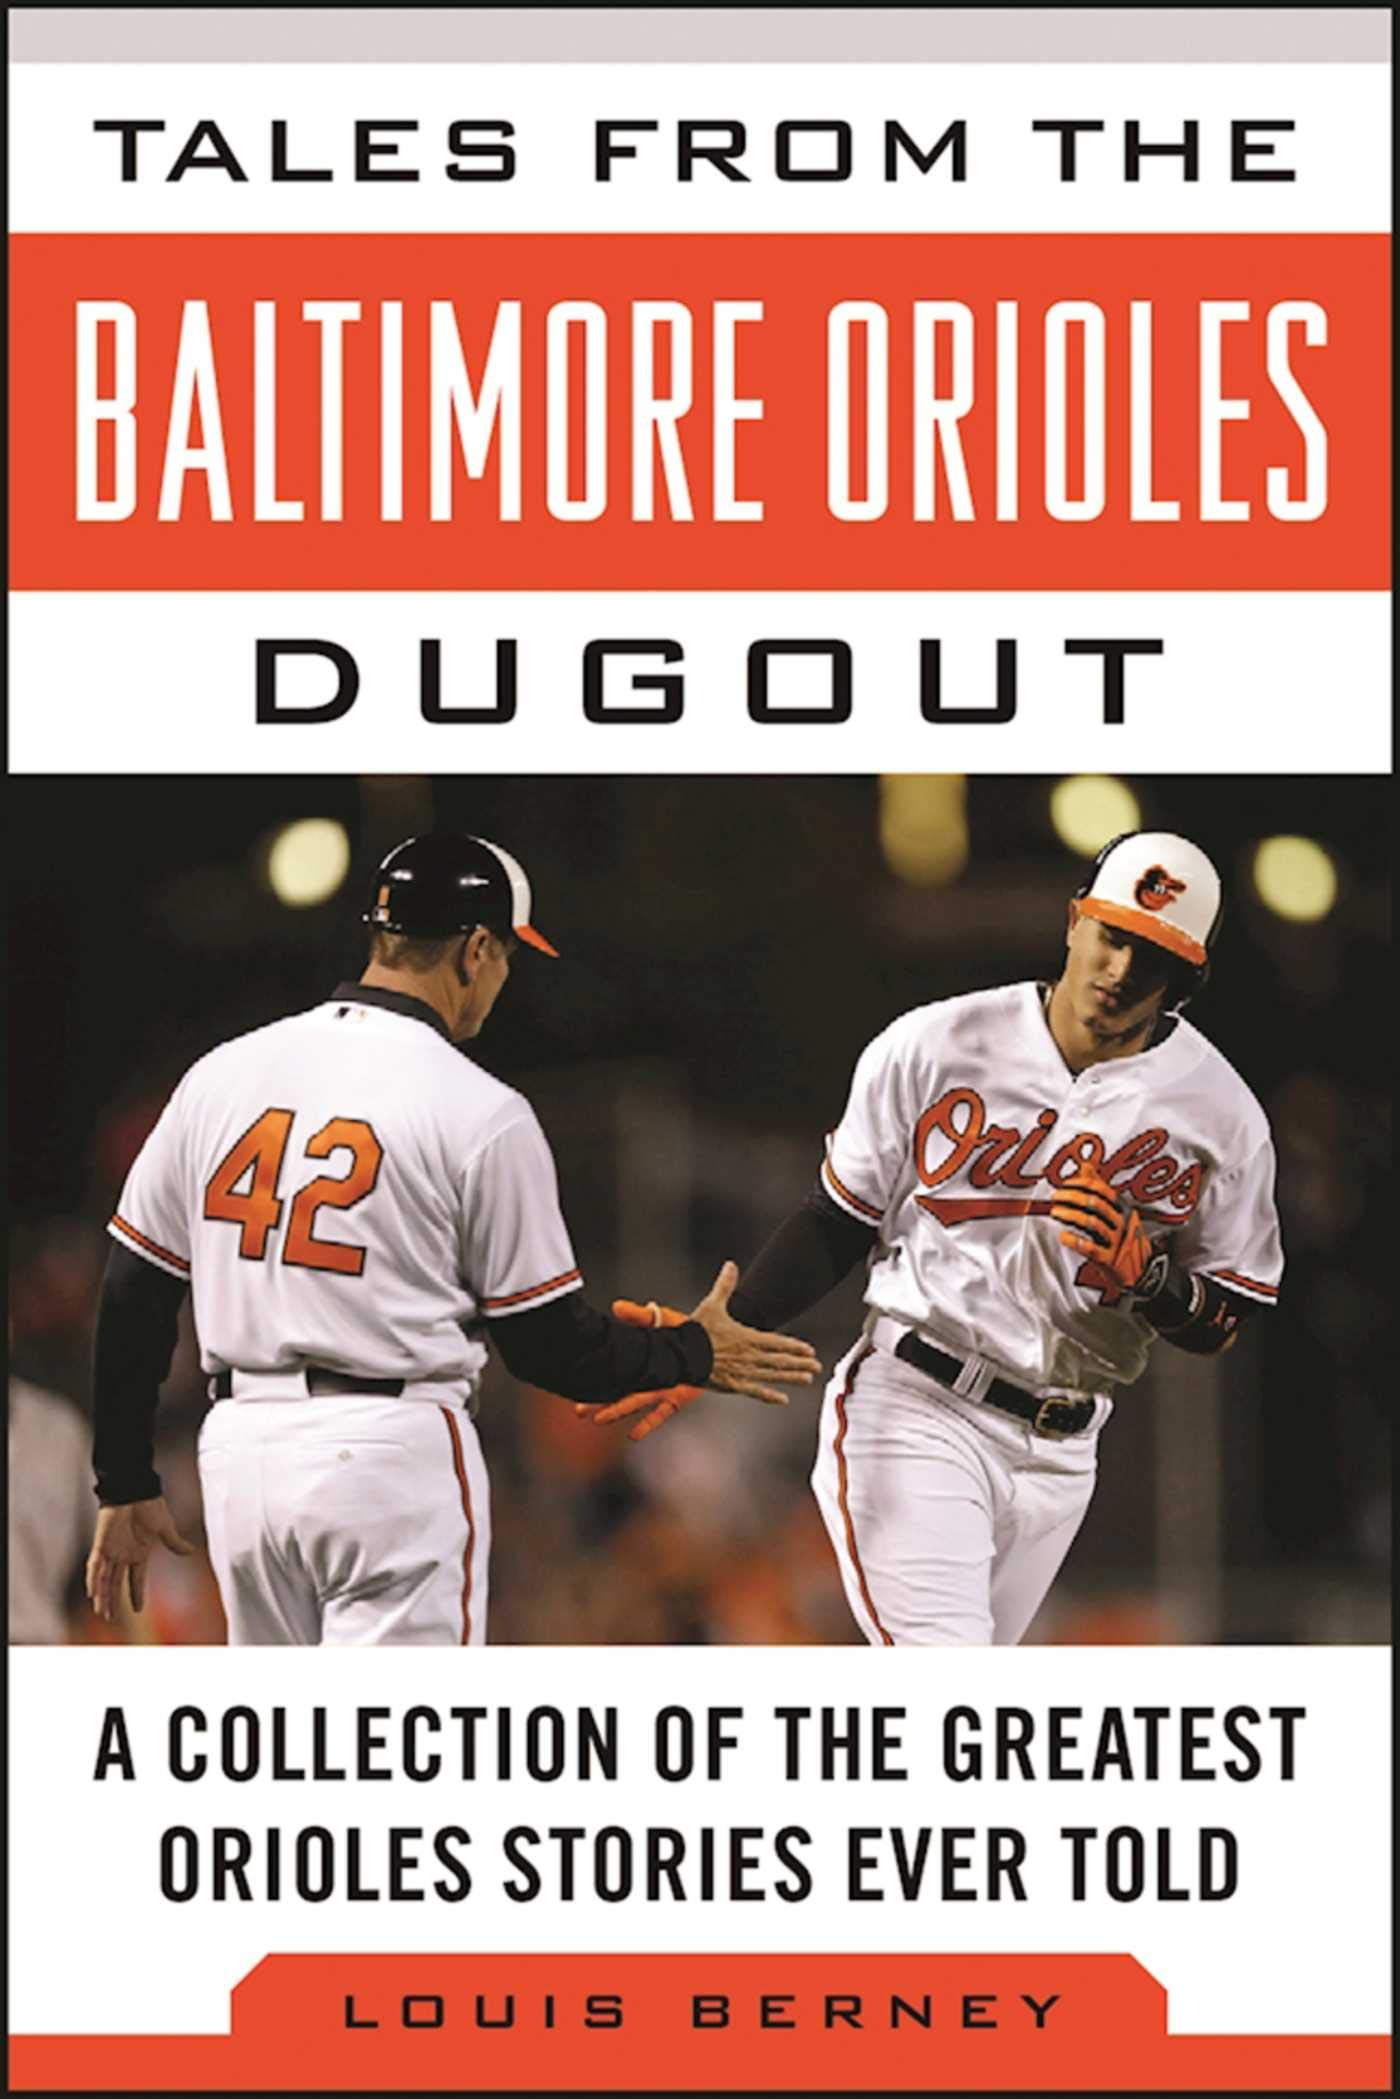 Image OfTales From The Baltimore Orioles Dugout: A Collection Of The Greatest Orioles Stories Ever Told (Tales From The Team)